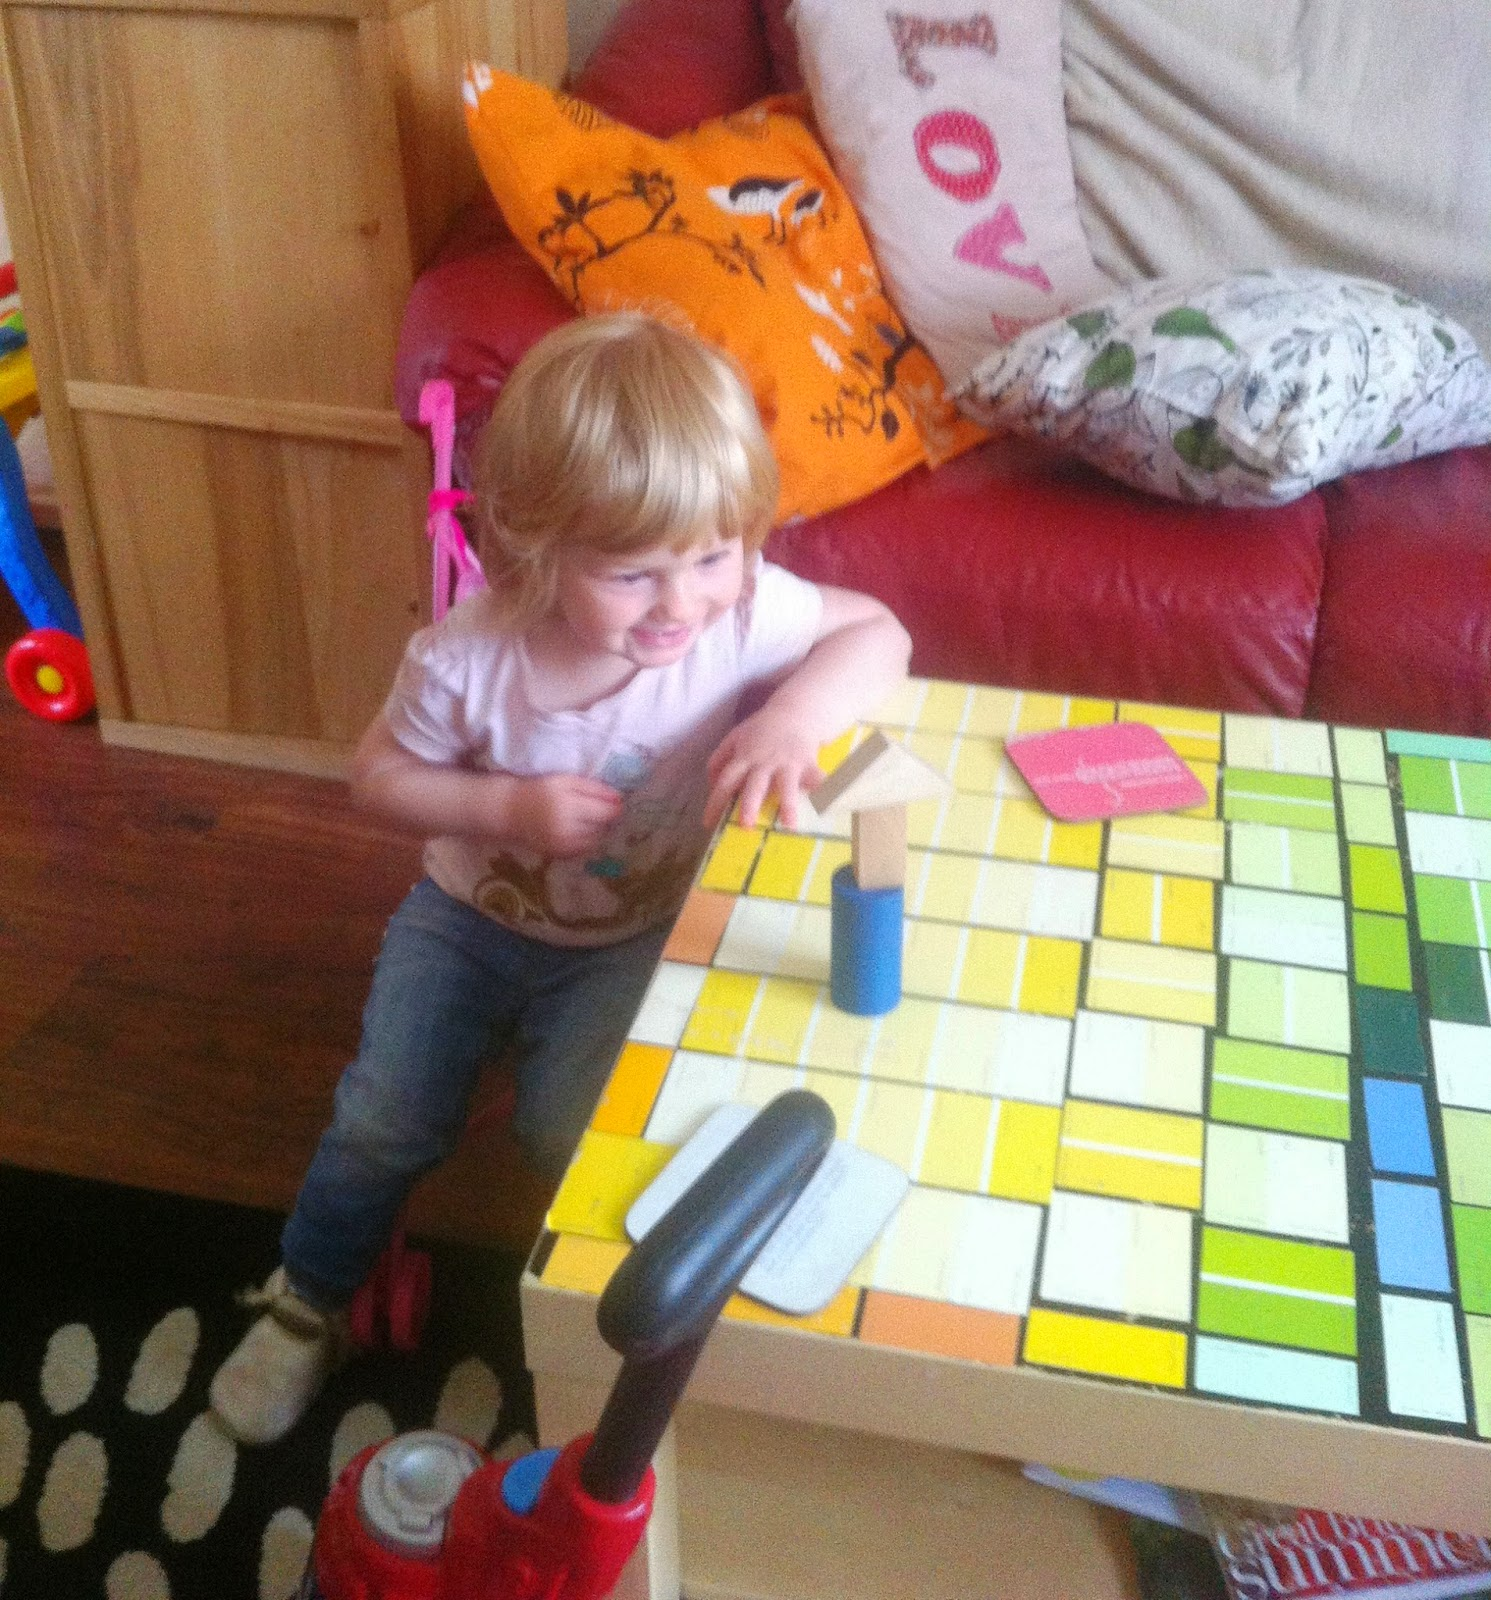 Eva stacking her blocks